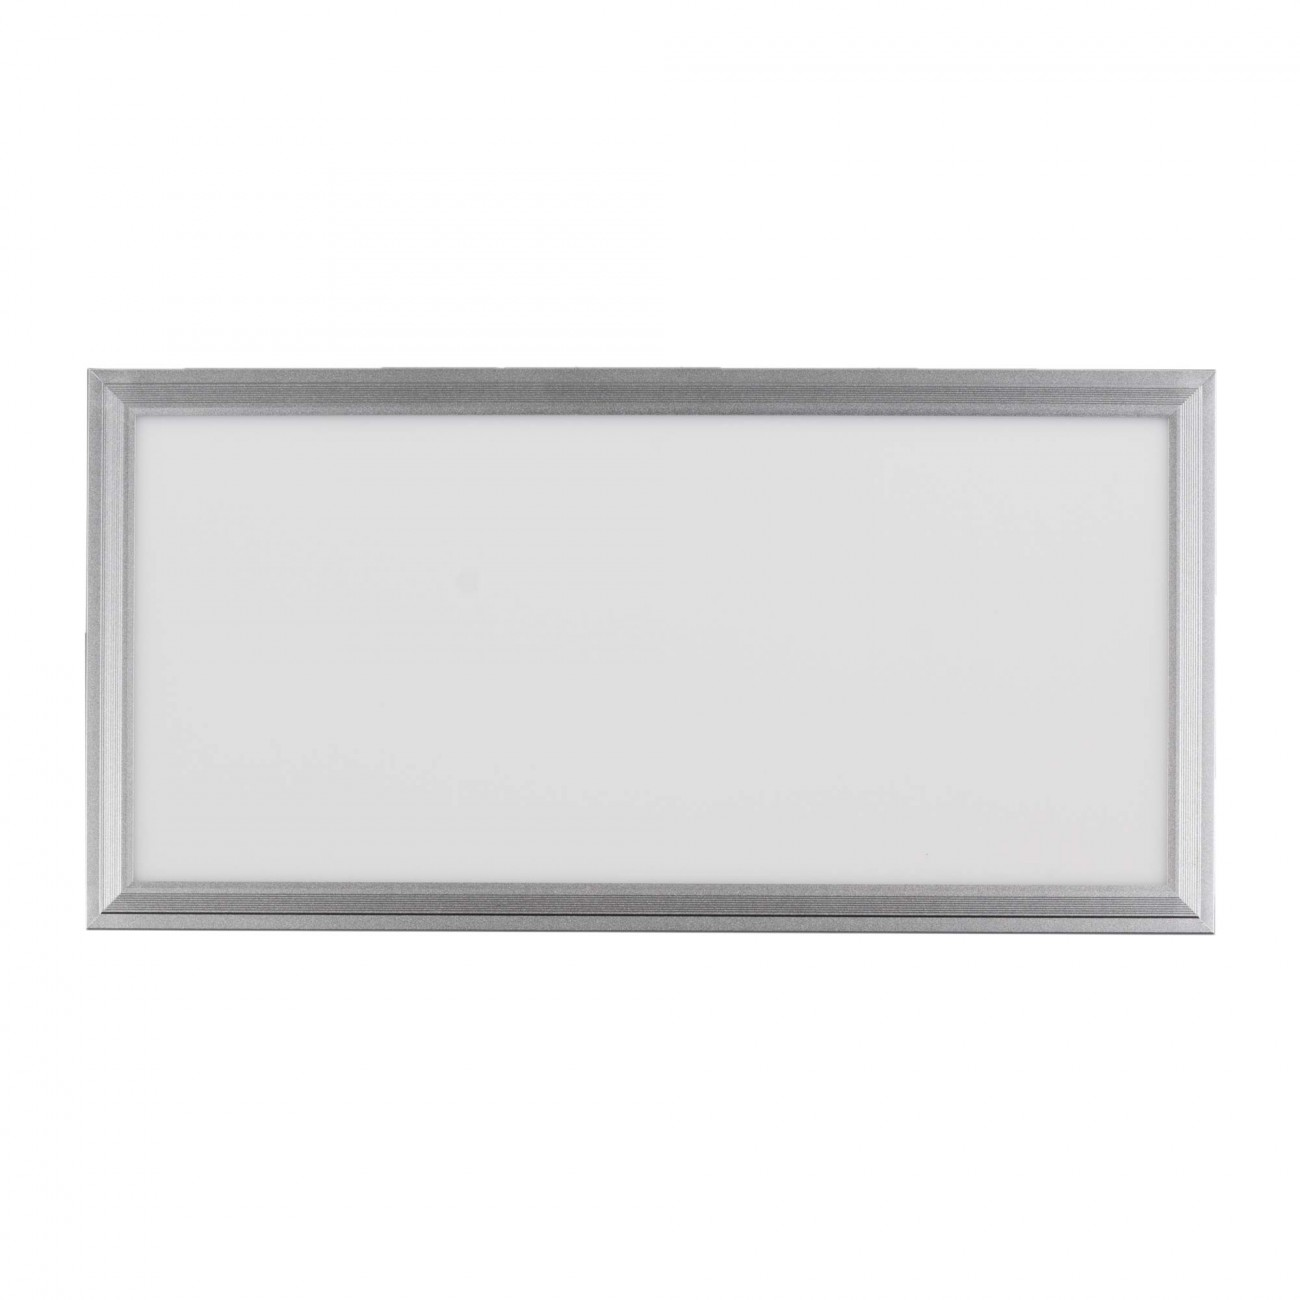 MAXCRAFT LED Panel Leuchte Slim 24 W 600 X 300 X 15 Mm